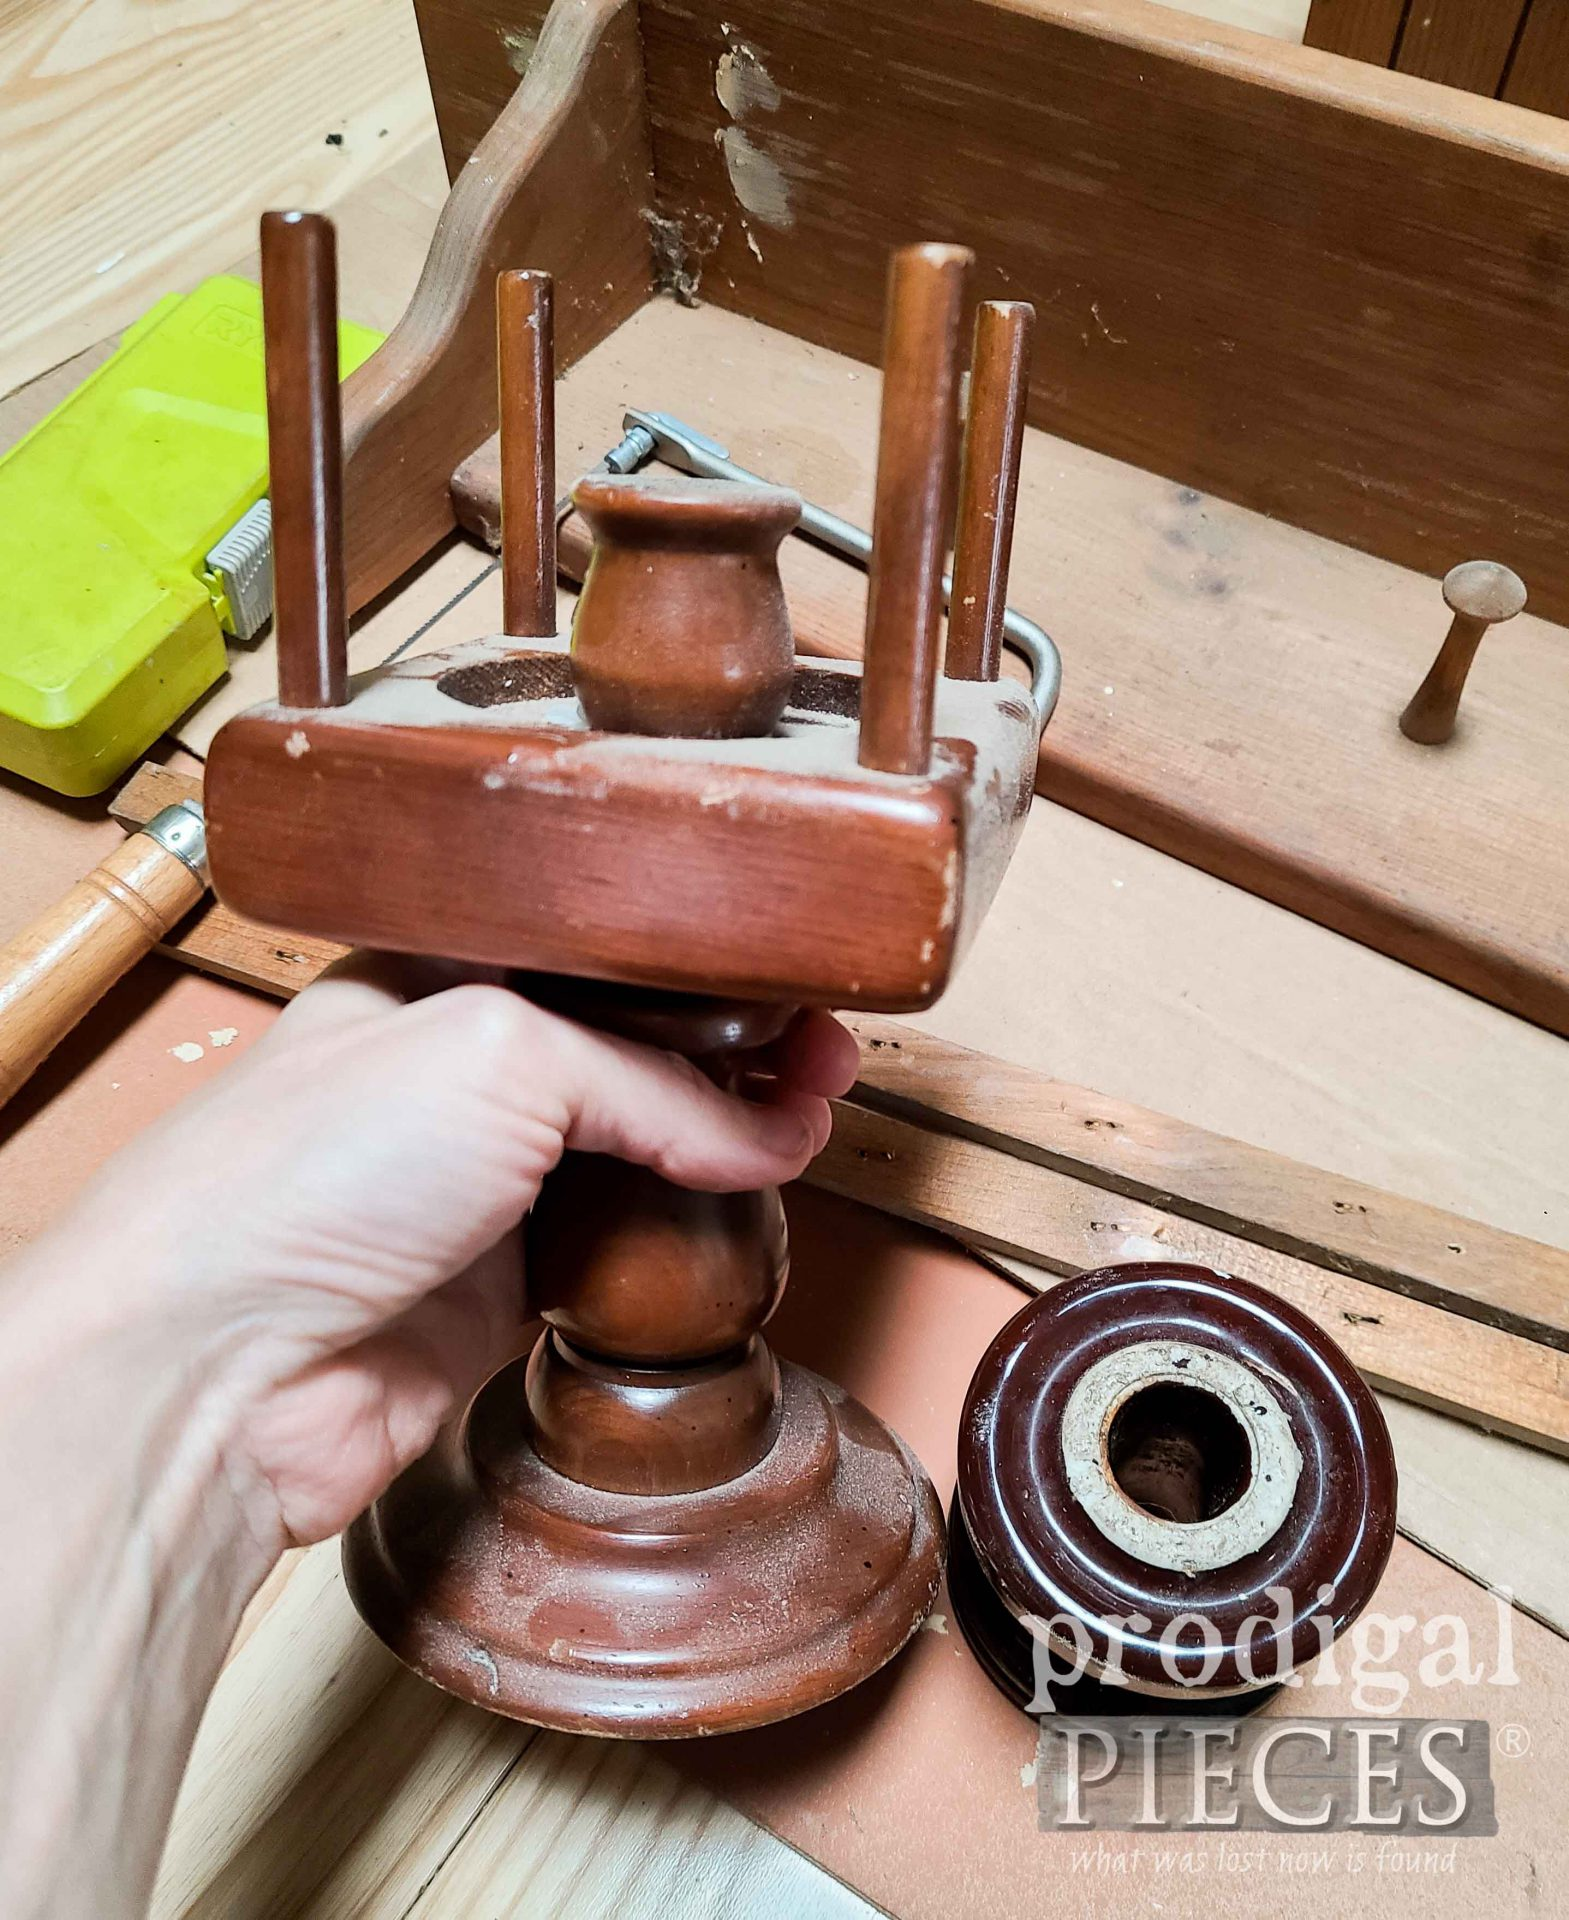 Thrifted Wooden Accessories for Upcycled Vintage Shelf   prodigalpieces.com #prodigalpieces